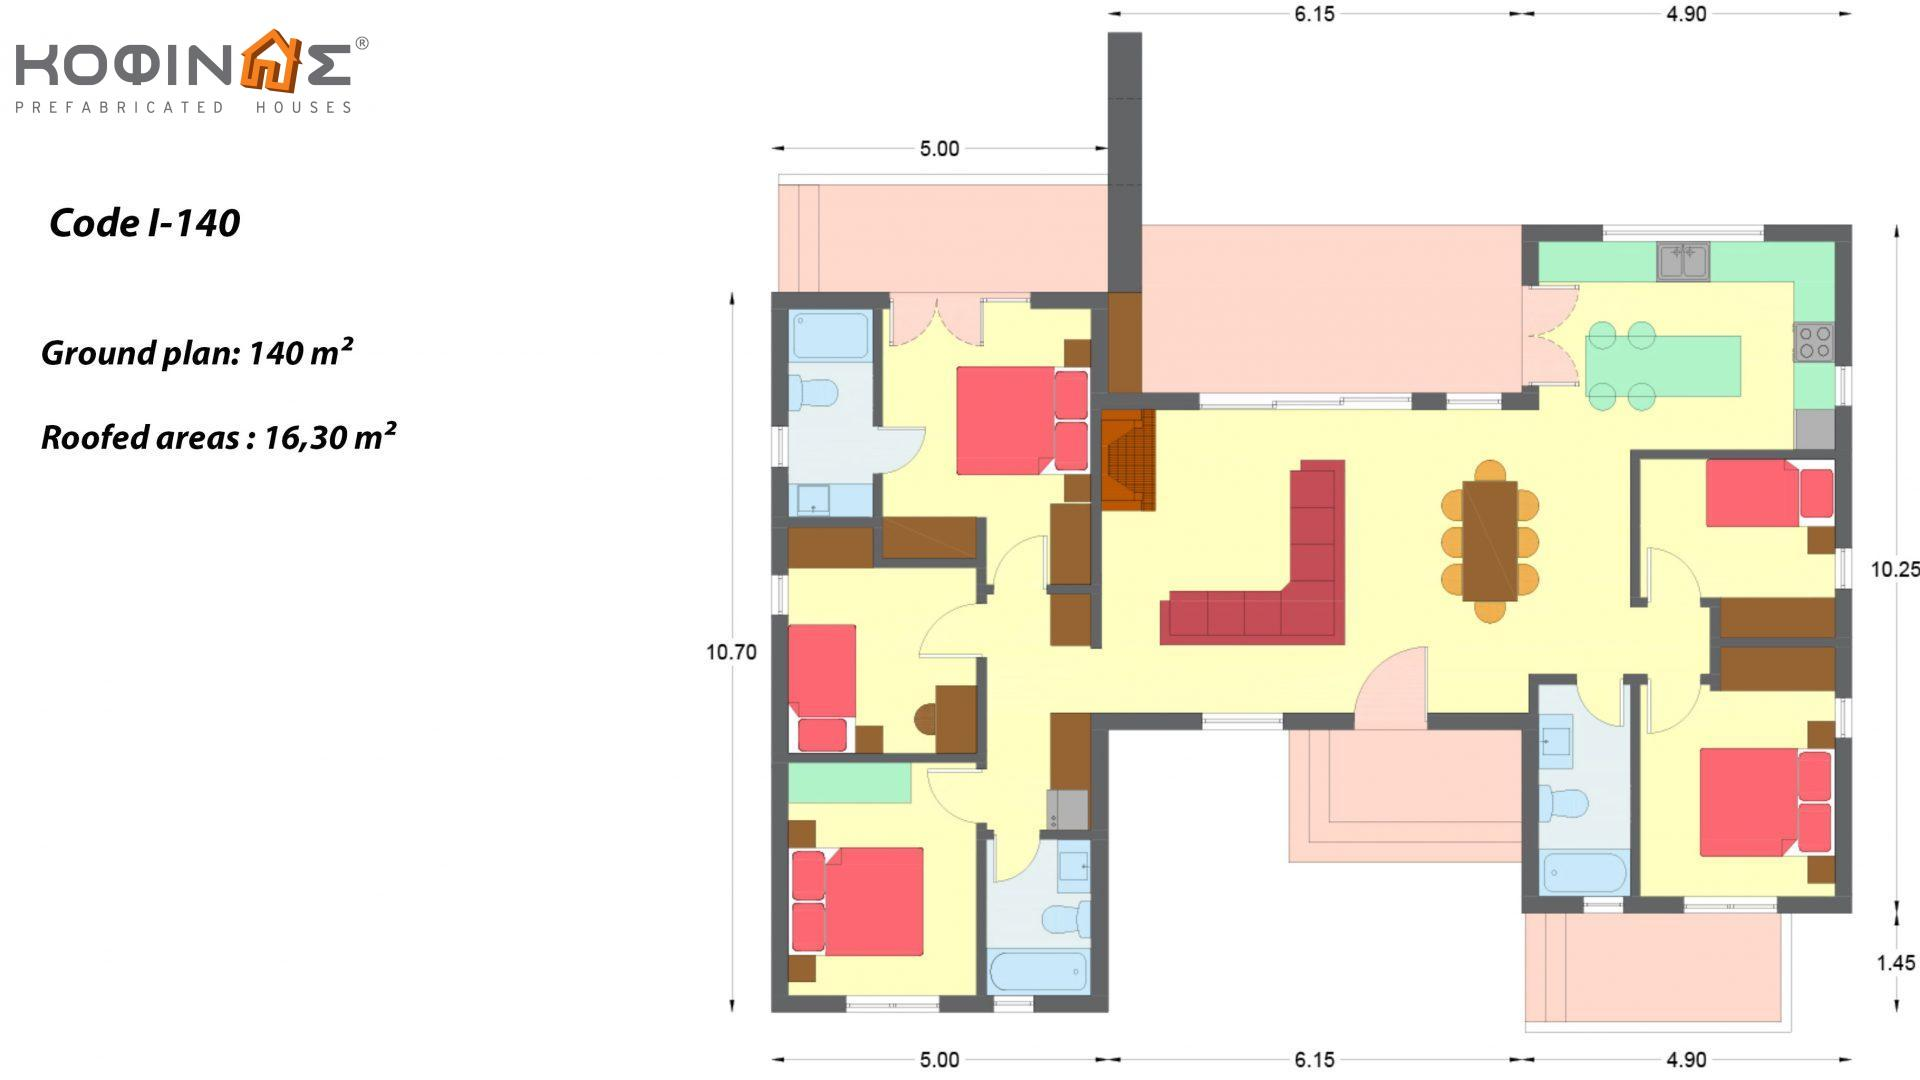 1-story house Ι-140, total surface of 140 m², roofed areas 16,30 m²